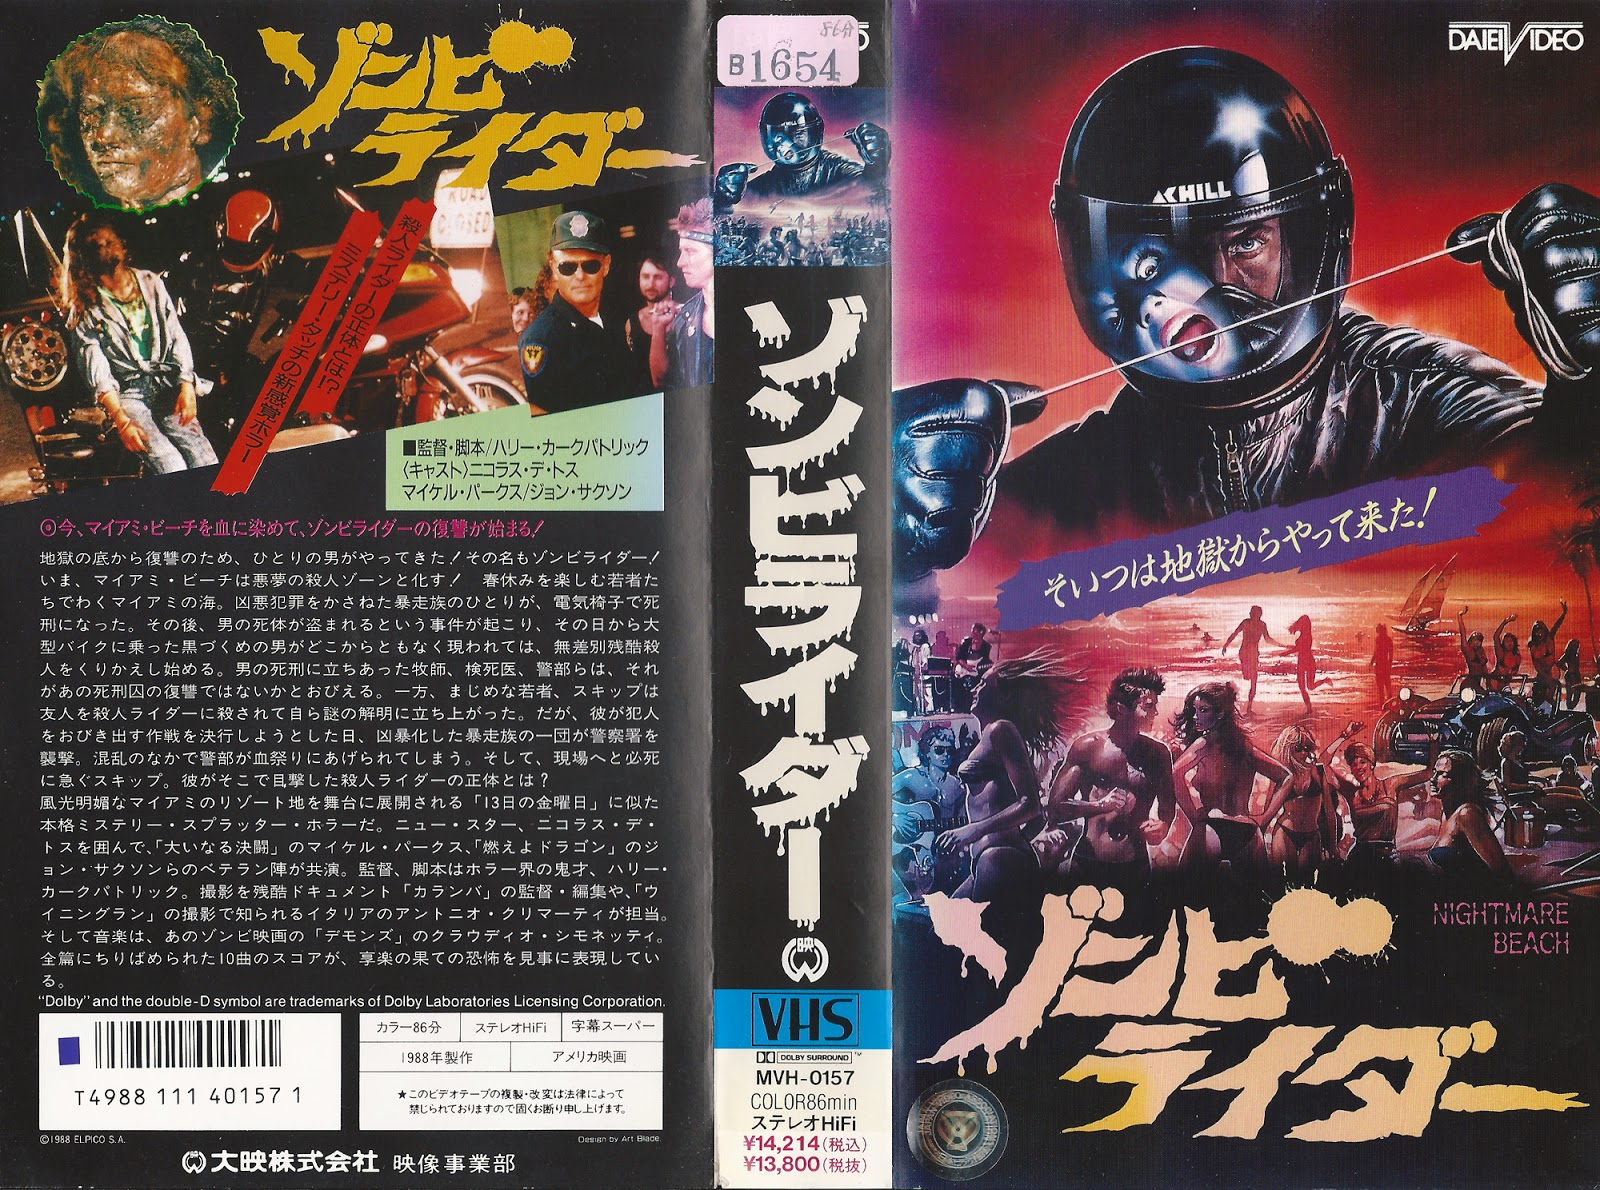 Nightmare Beach (1989) Japanese VHS Cover